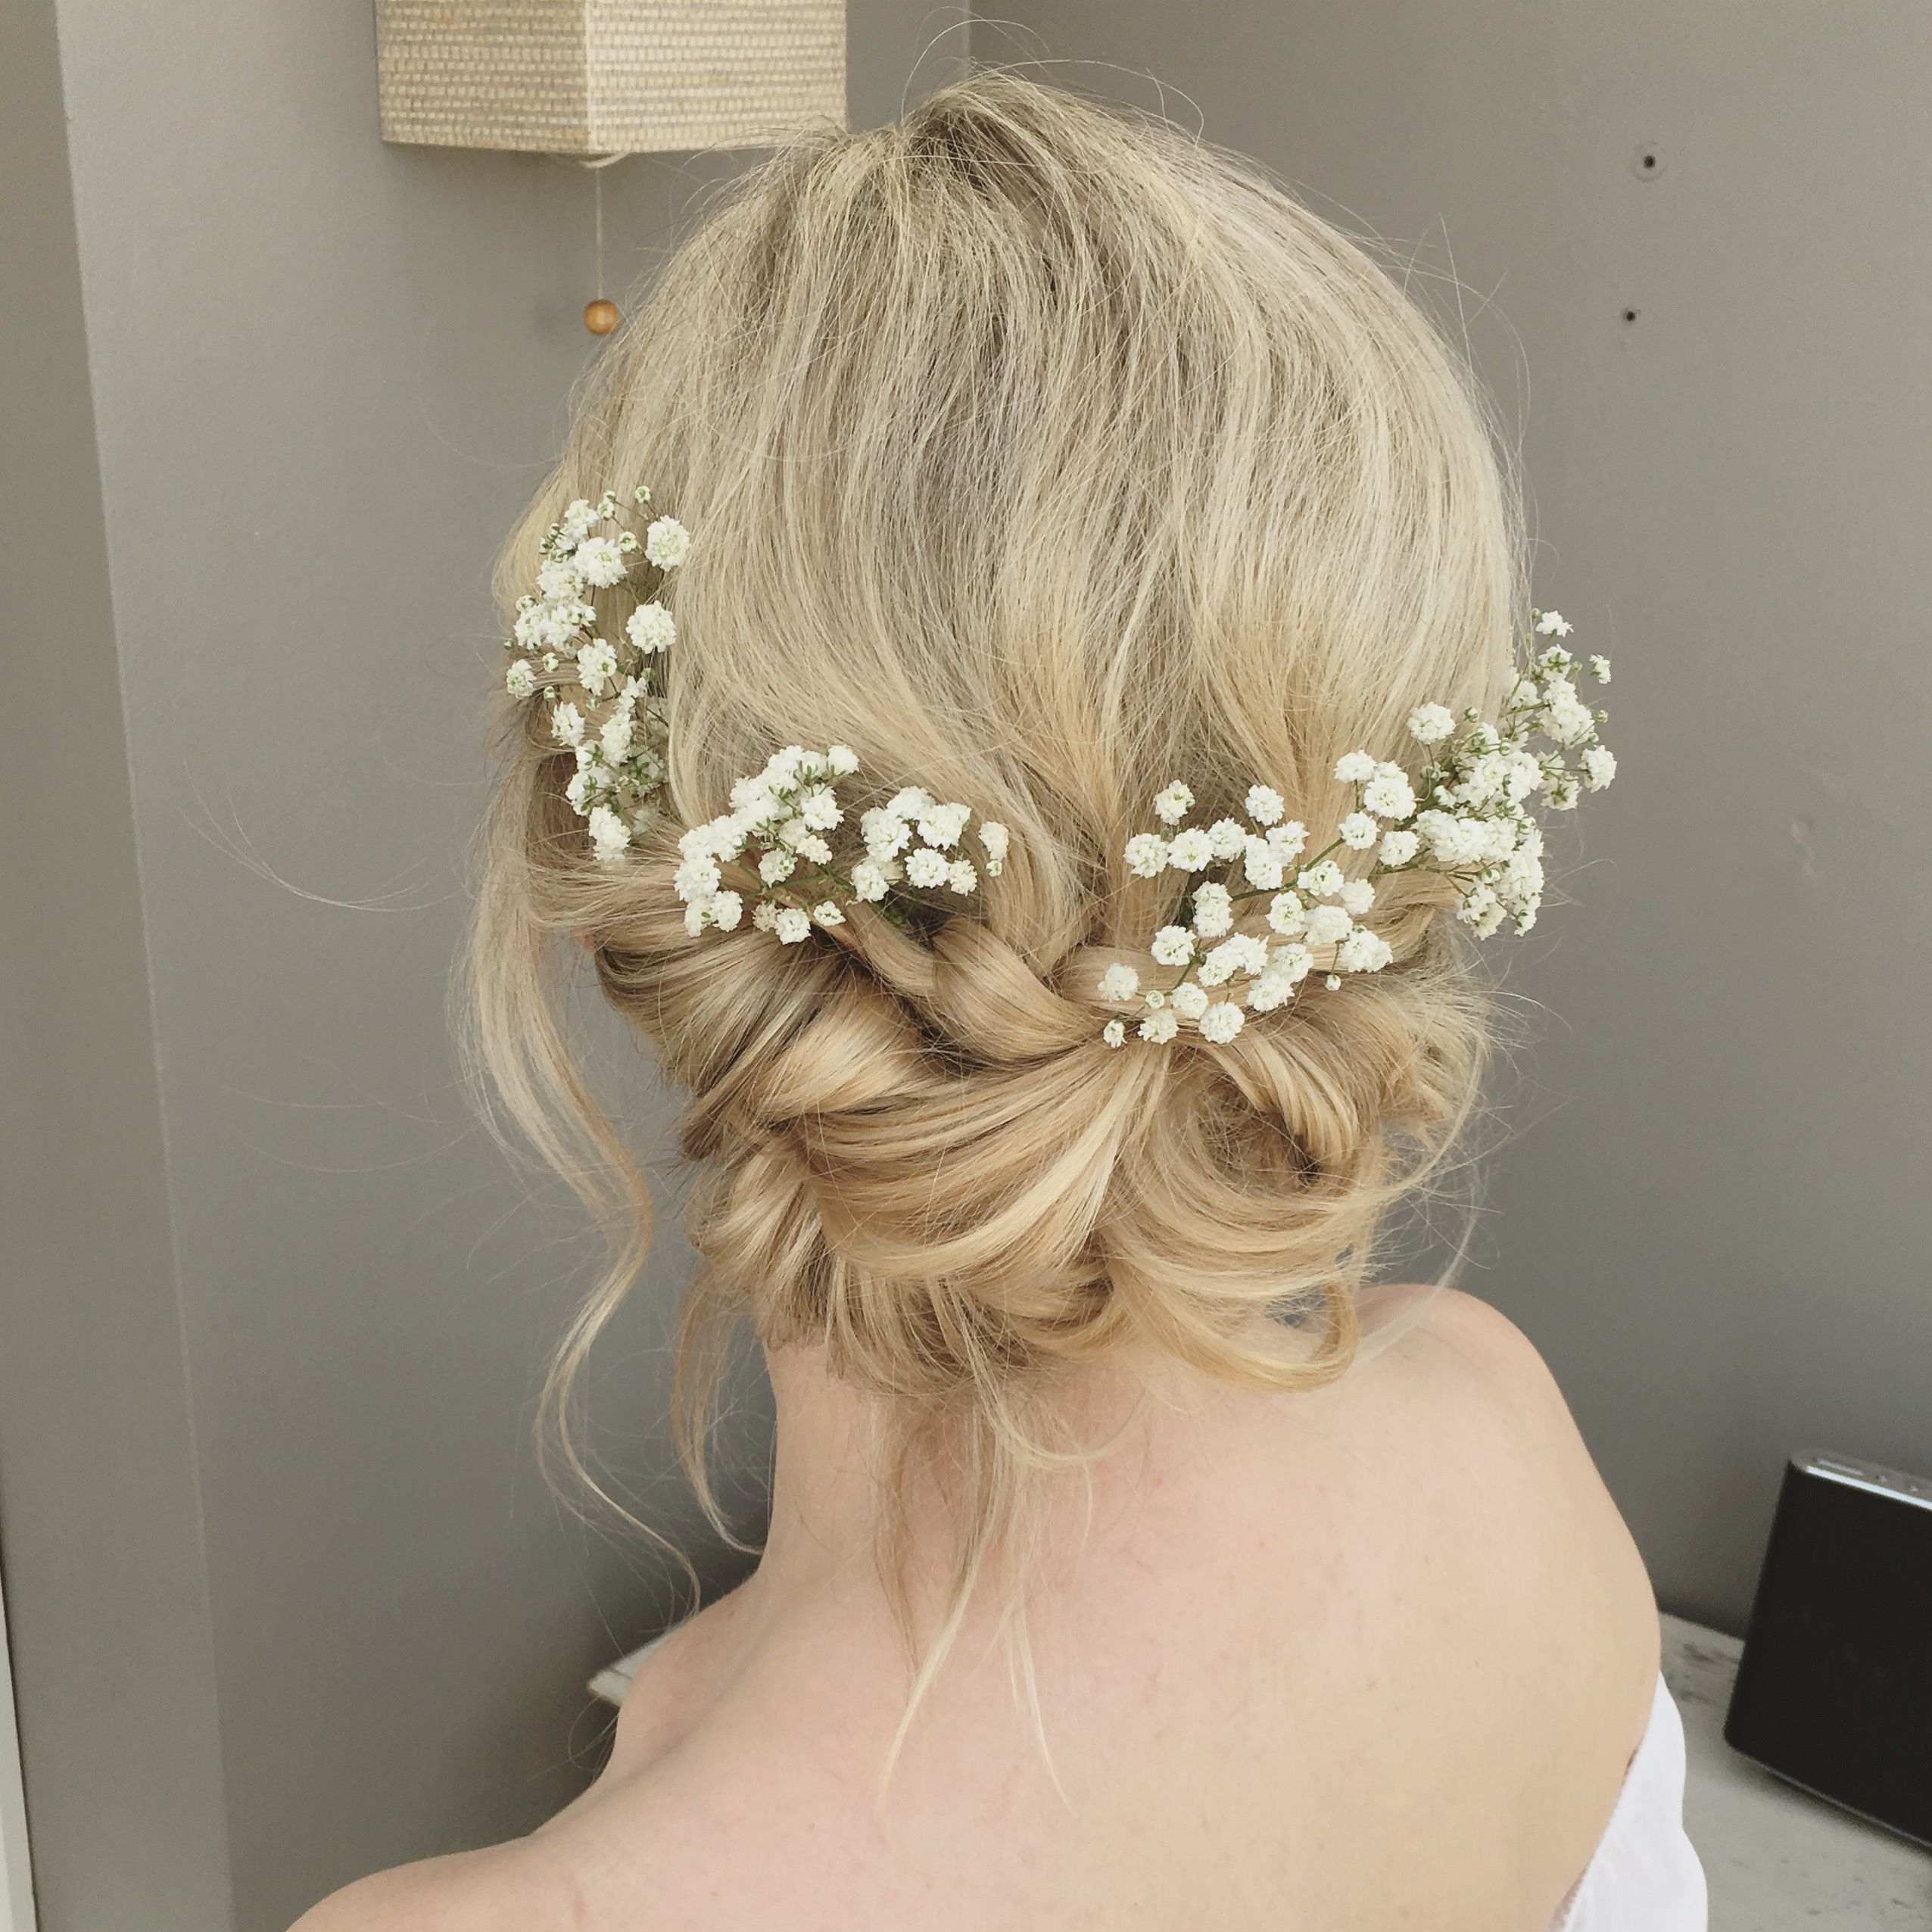 Boho Messy And Relaxed Wedding Hair With Gypsophila And Plaits Woven Regarding Current Woven Updos With Tendrils For Wedding (View 2 of 20)